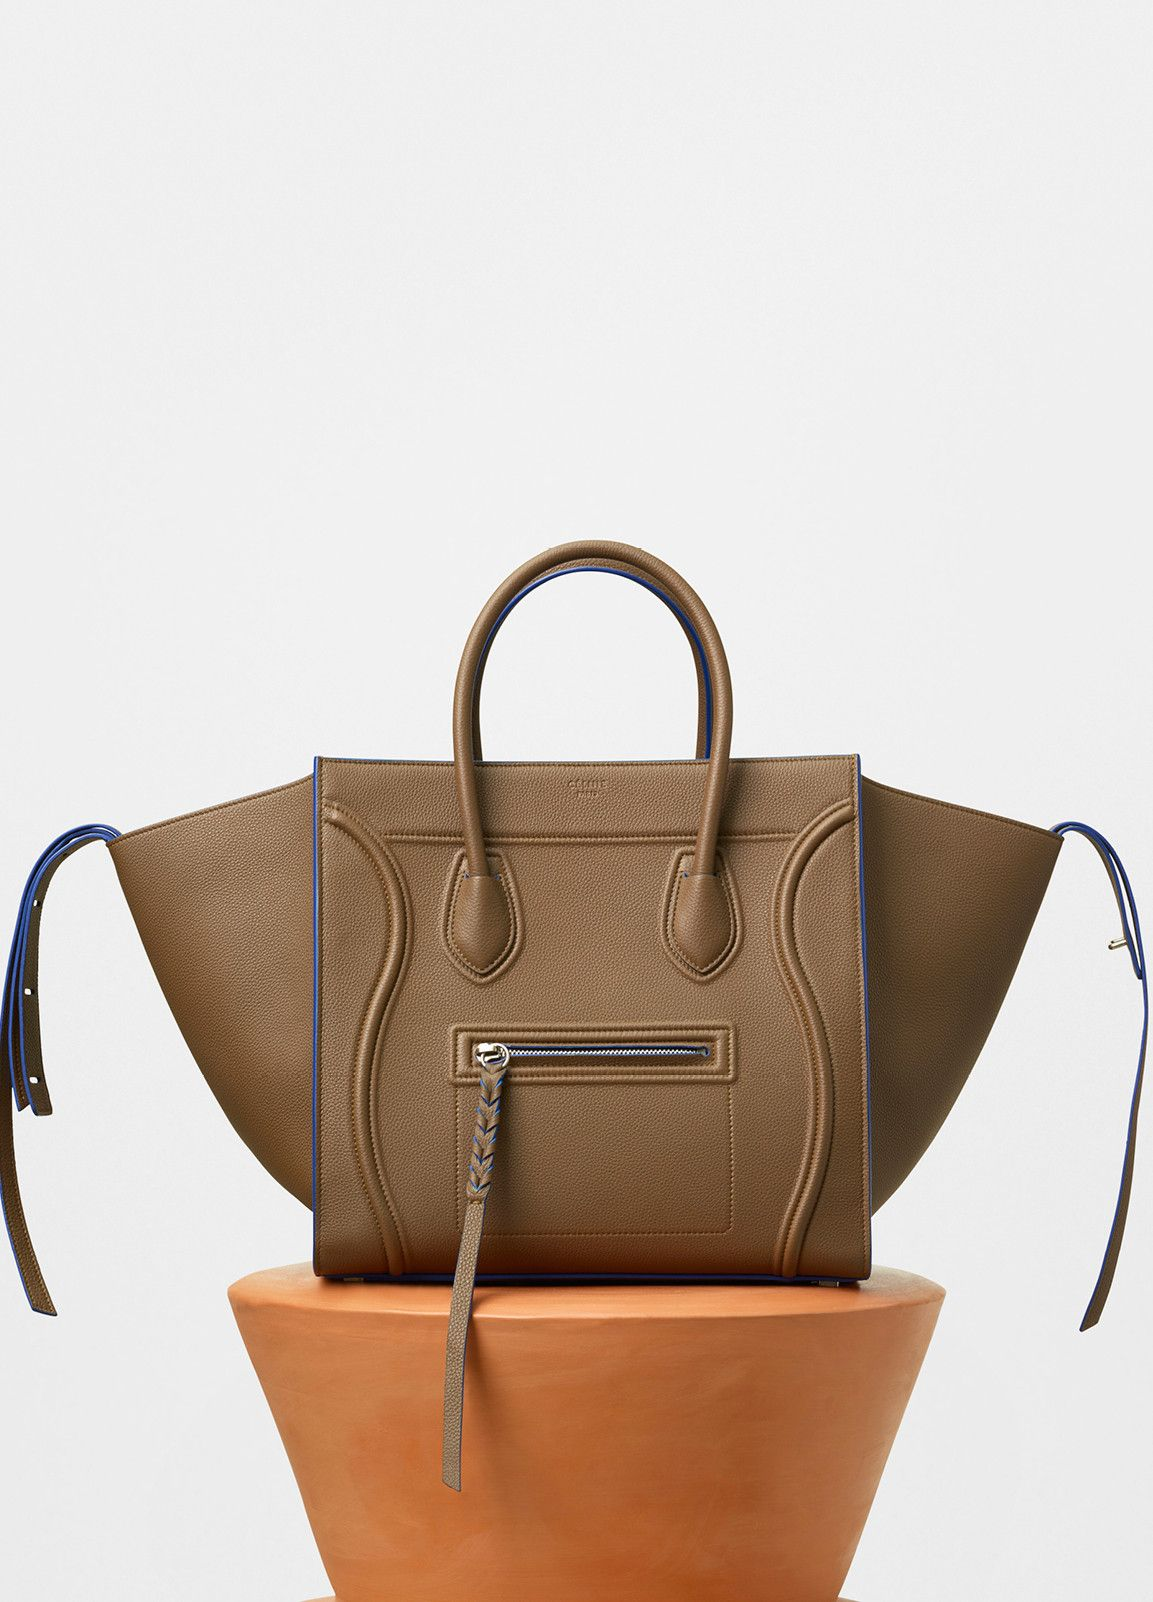 9db6d31b4a Luggage Phantom Tote Bag in Baby Grained Calfskin - Fall   Winter  Collection 2016